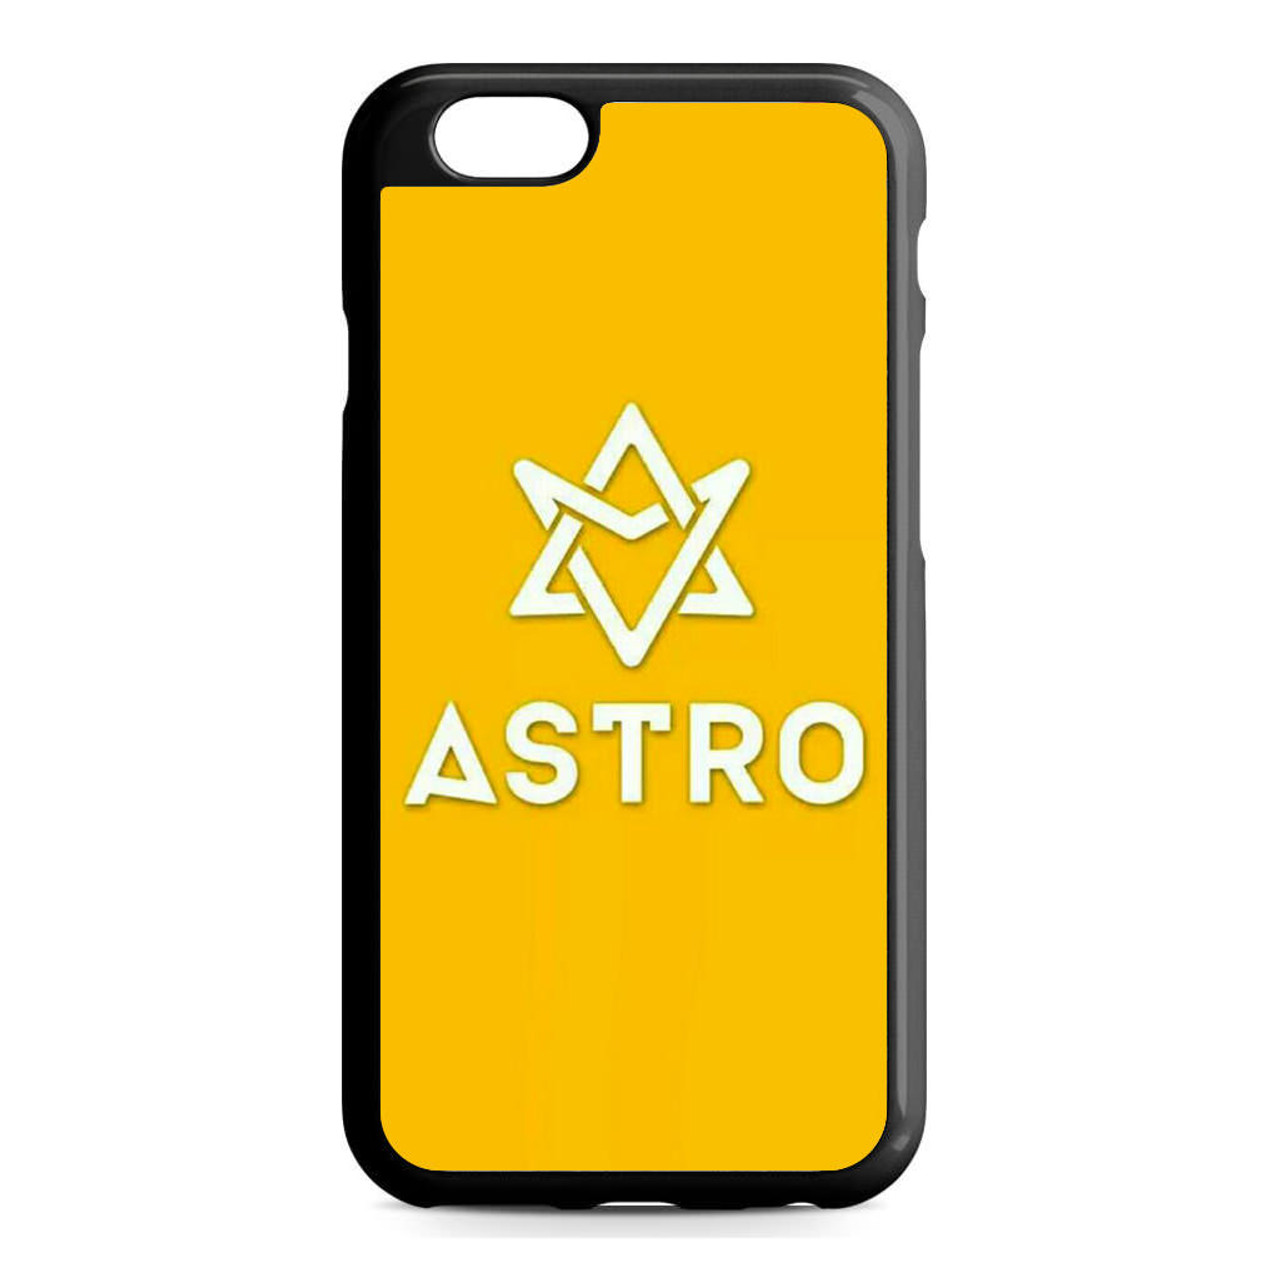 newest 0f2f0 ea518 Astro KPop iPhone 6/6S Case